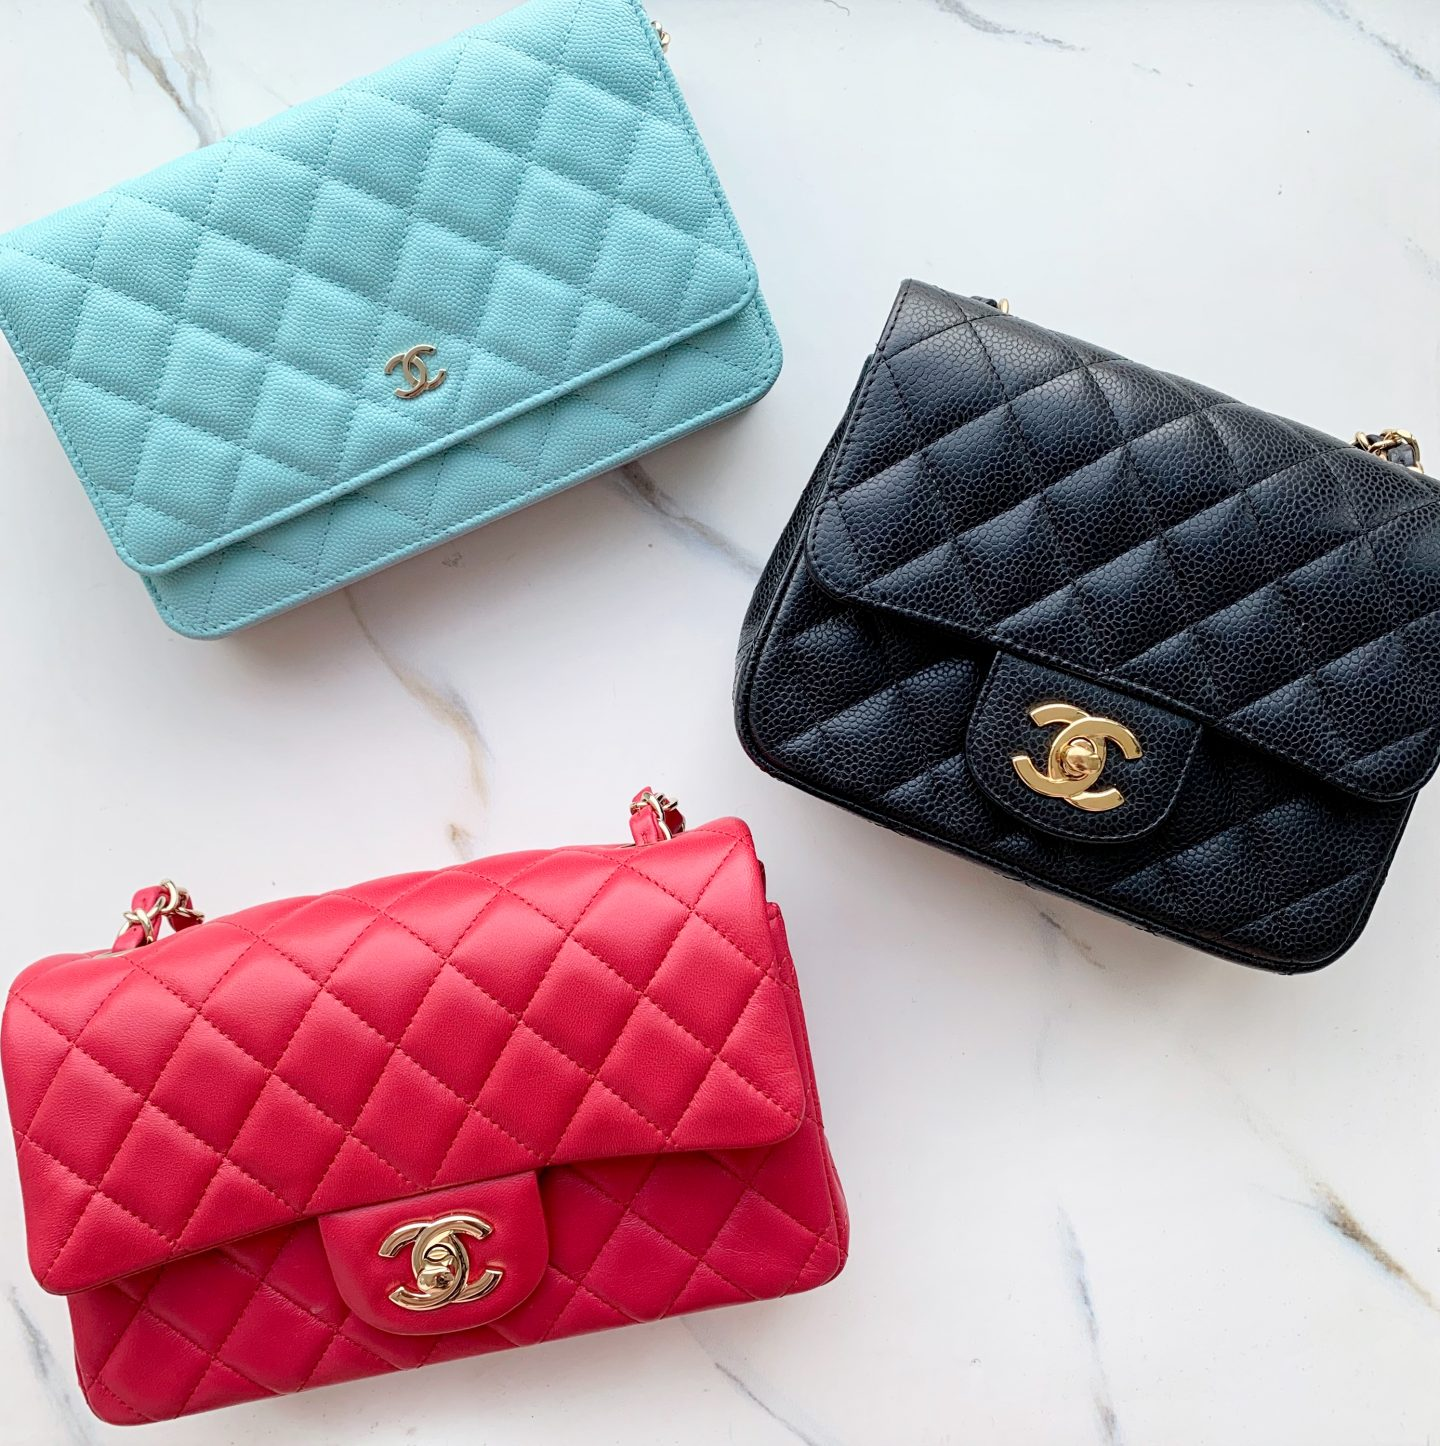 1b5ad2eb068c11 The Best First Chanel Bag? - Chase Amie